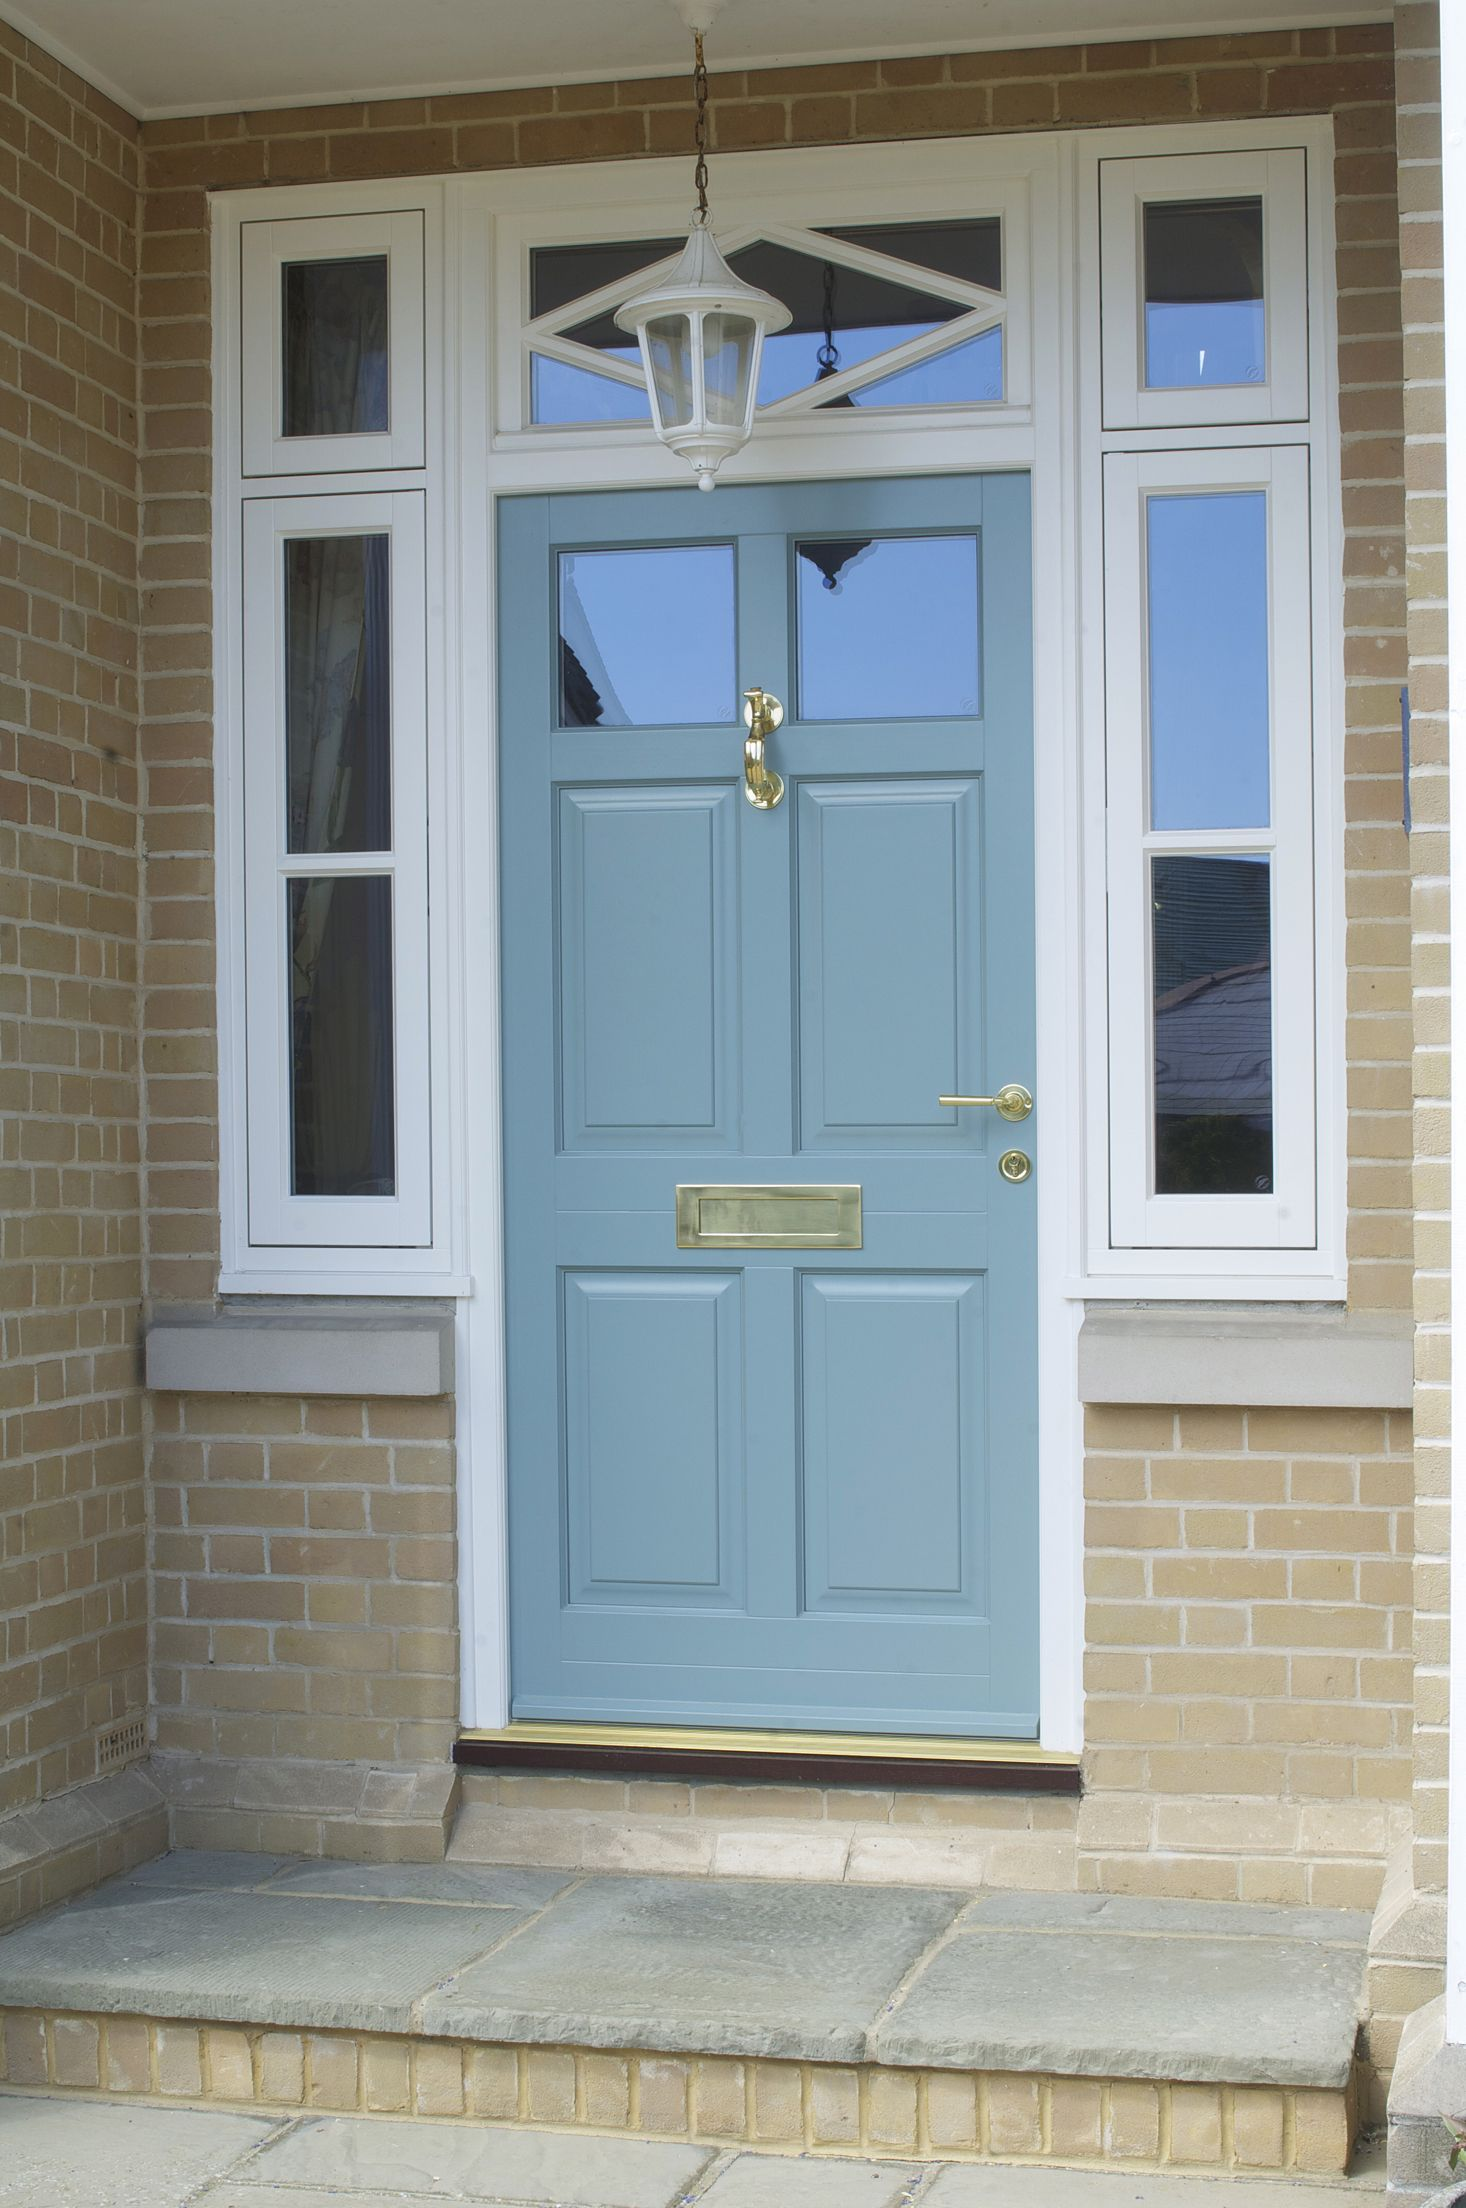 Samuel heath bathroom accessories - Classic Georgian Entrance Door And Fanlight With Side Casements Equipped With Samuel Heath Ironmongery